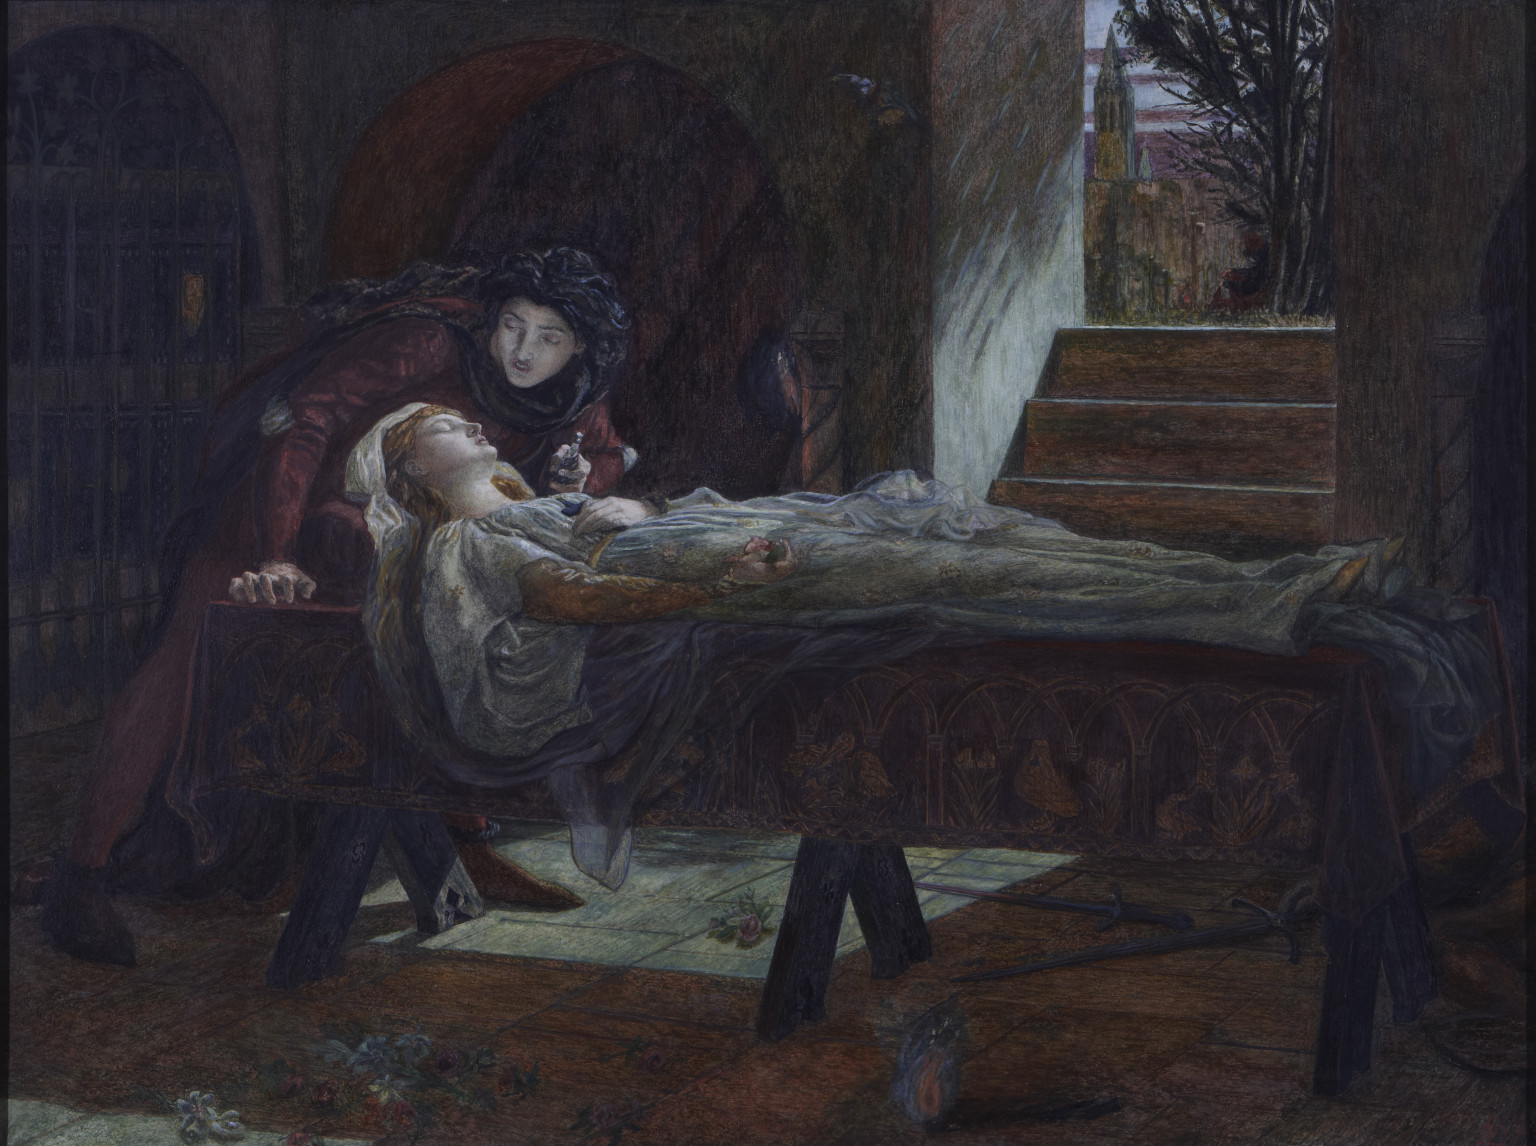 Lucy Madox Brown, The Tomb Scene from Shakespeare's 'Romeo and Juliet' (Act V: sc.3), 1870, Watercolour and gouache on paper.  Wightwick Manor - National Trust